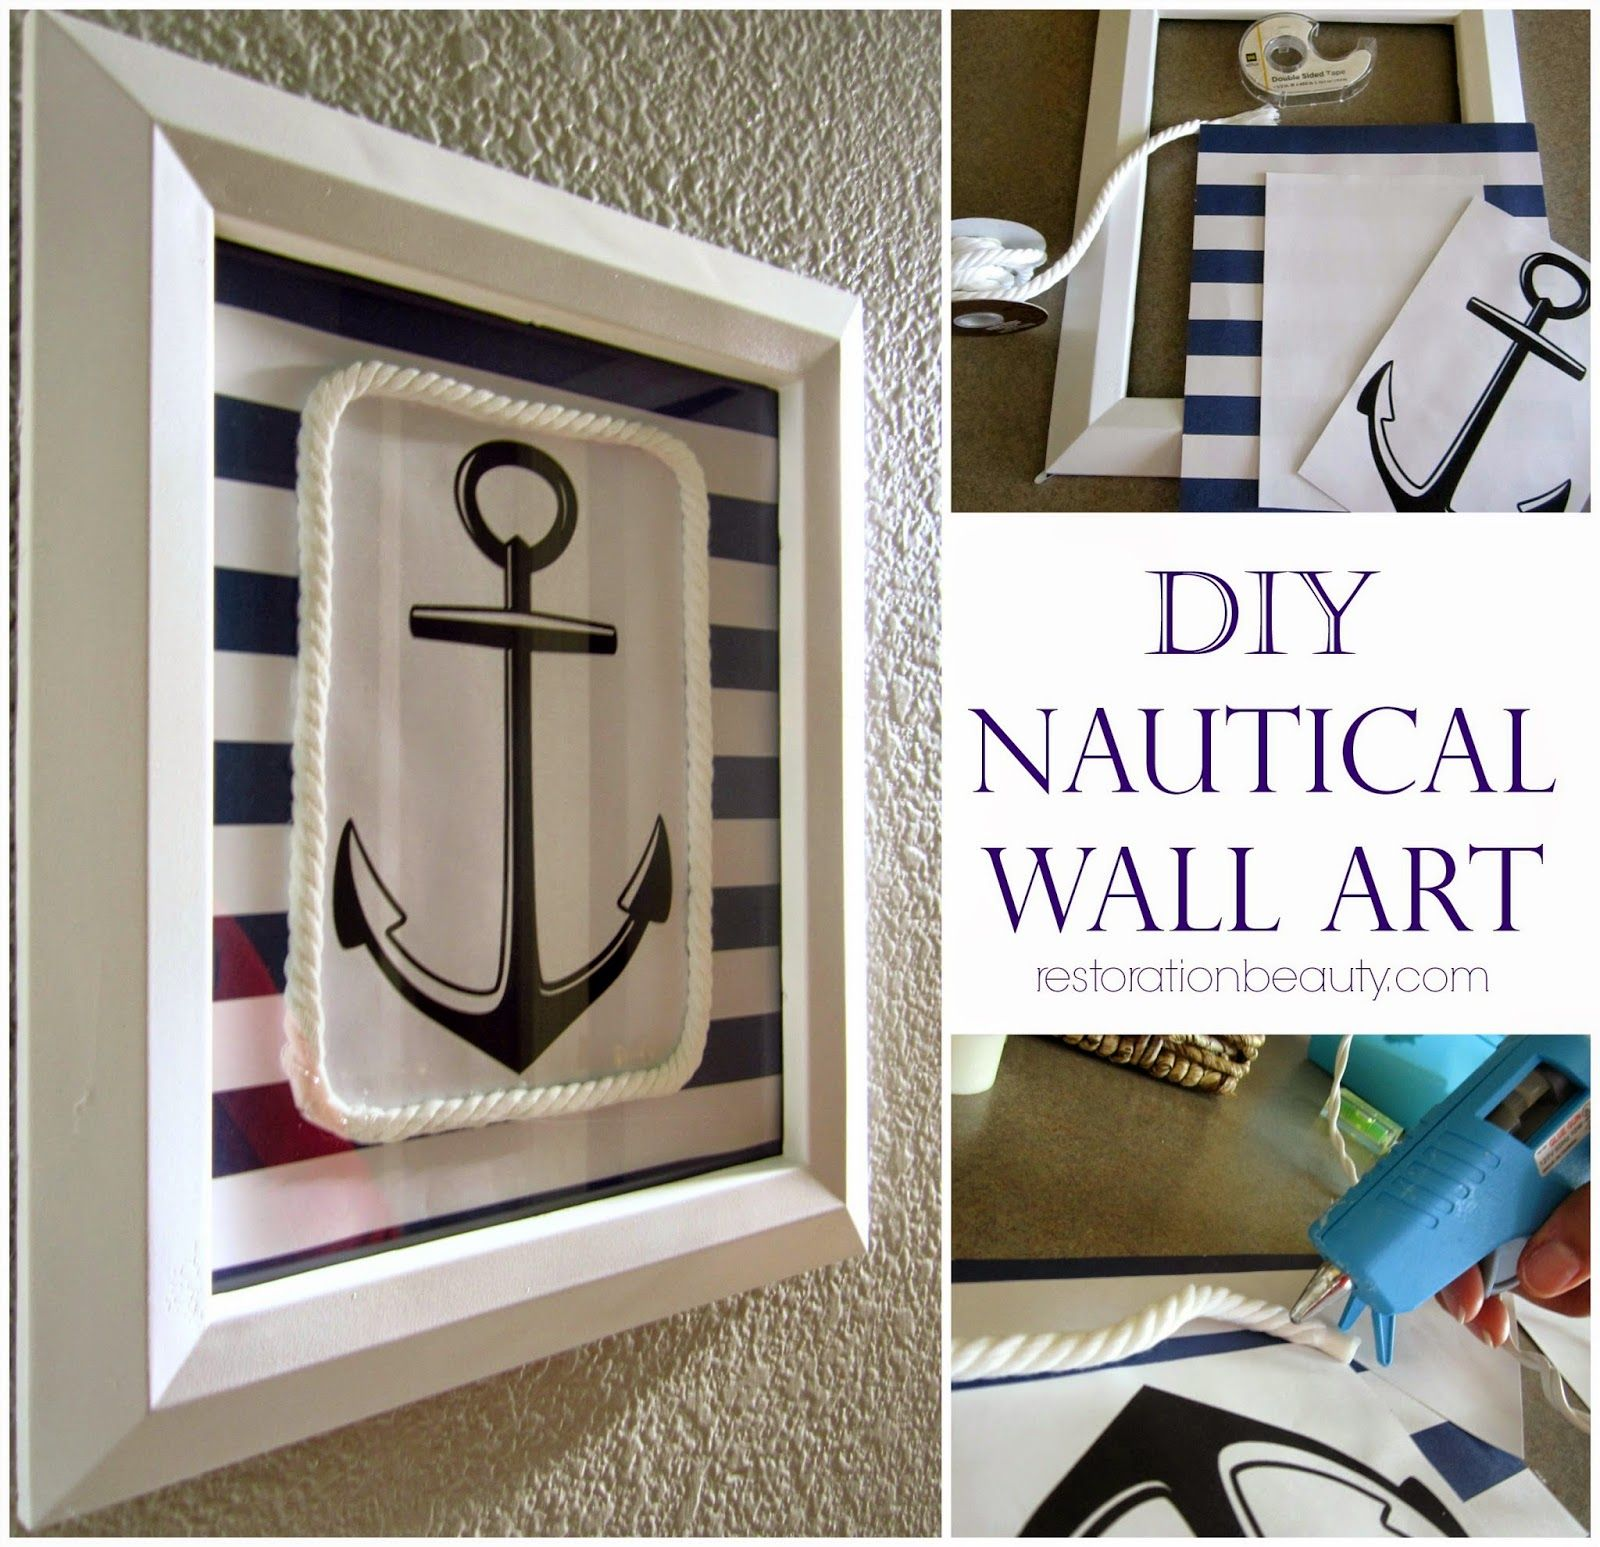 Diy Nautical Decor Wall Art Bathroom Wall Art Diy Nautical Diy Nautical Bathroom Decor